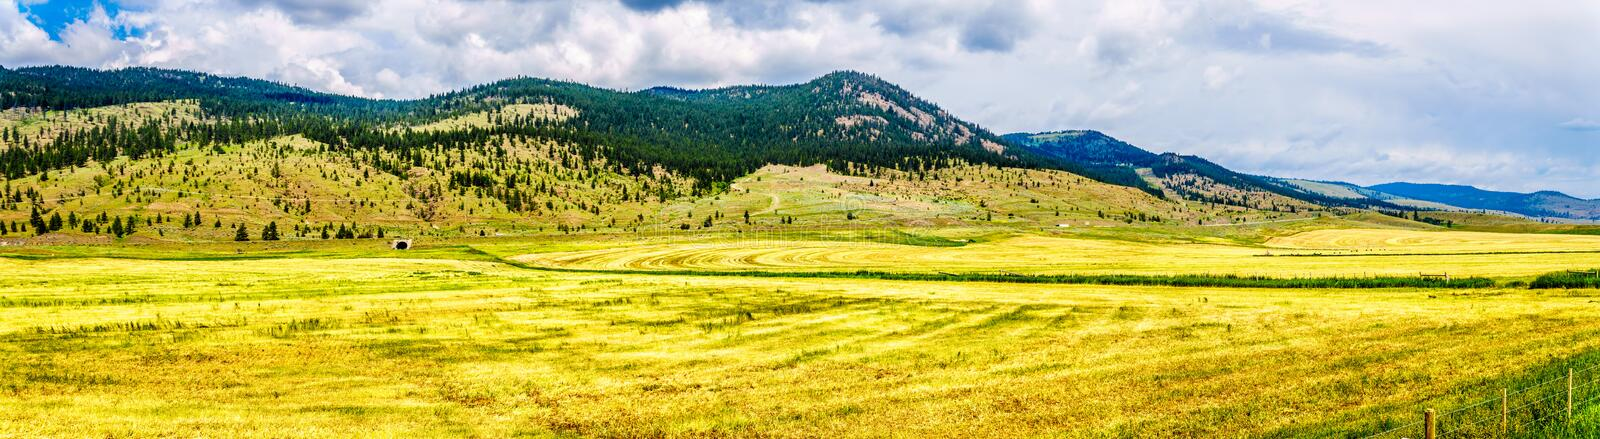 Ranch Land in the Nicola Valley in British Columbia, Canada. Ranch Land in the Nicola Valley along Highway 5A between Merritt and Kamloops, British Columbia stock photos